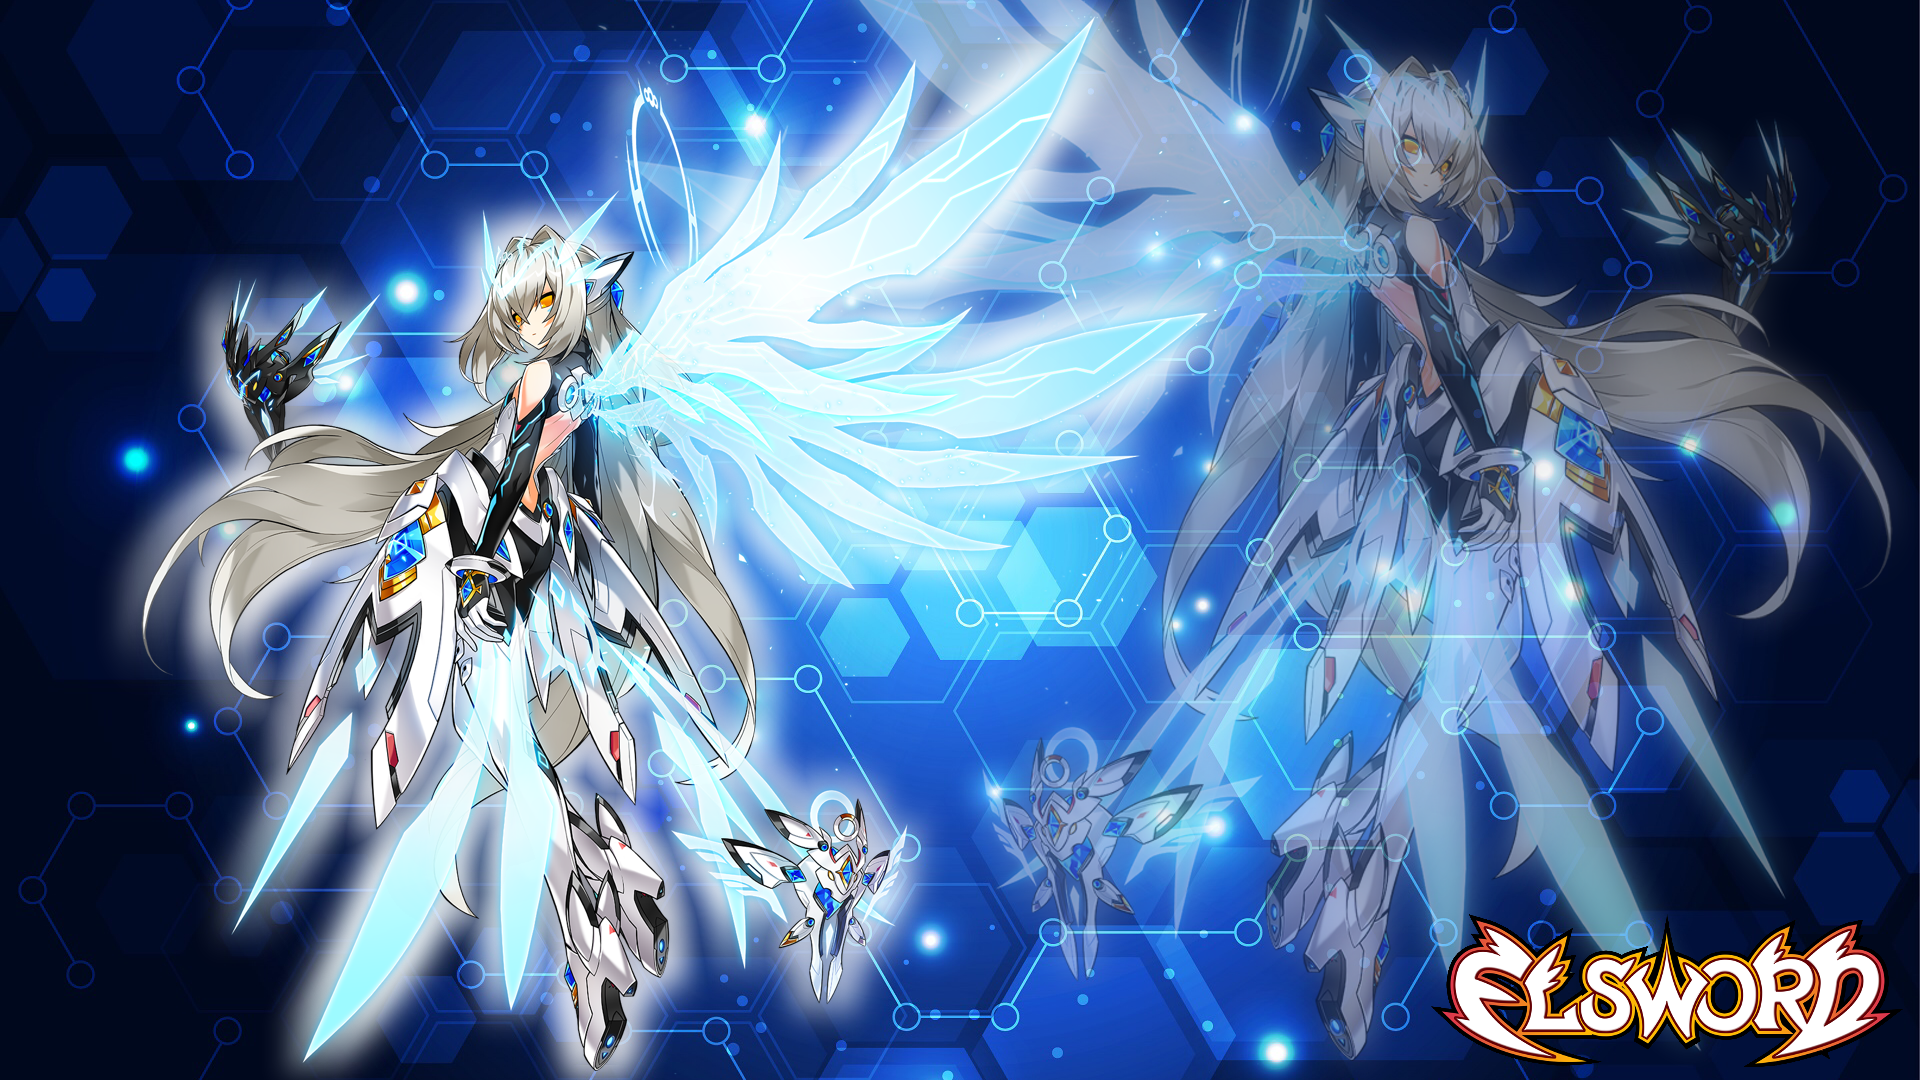 _elsword____code__sariel_eve_wallpaper_by_ggalleonalliance-dcfh96m.png